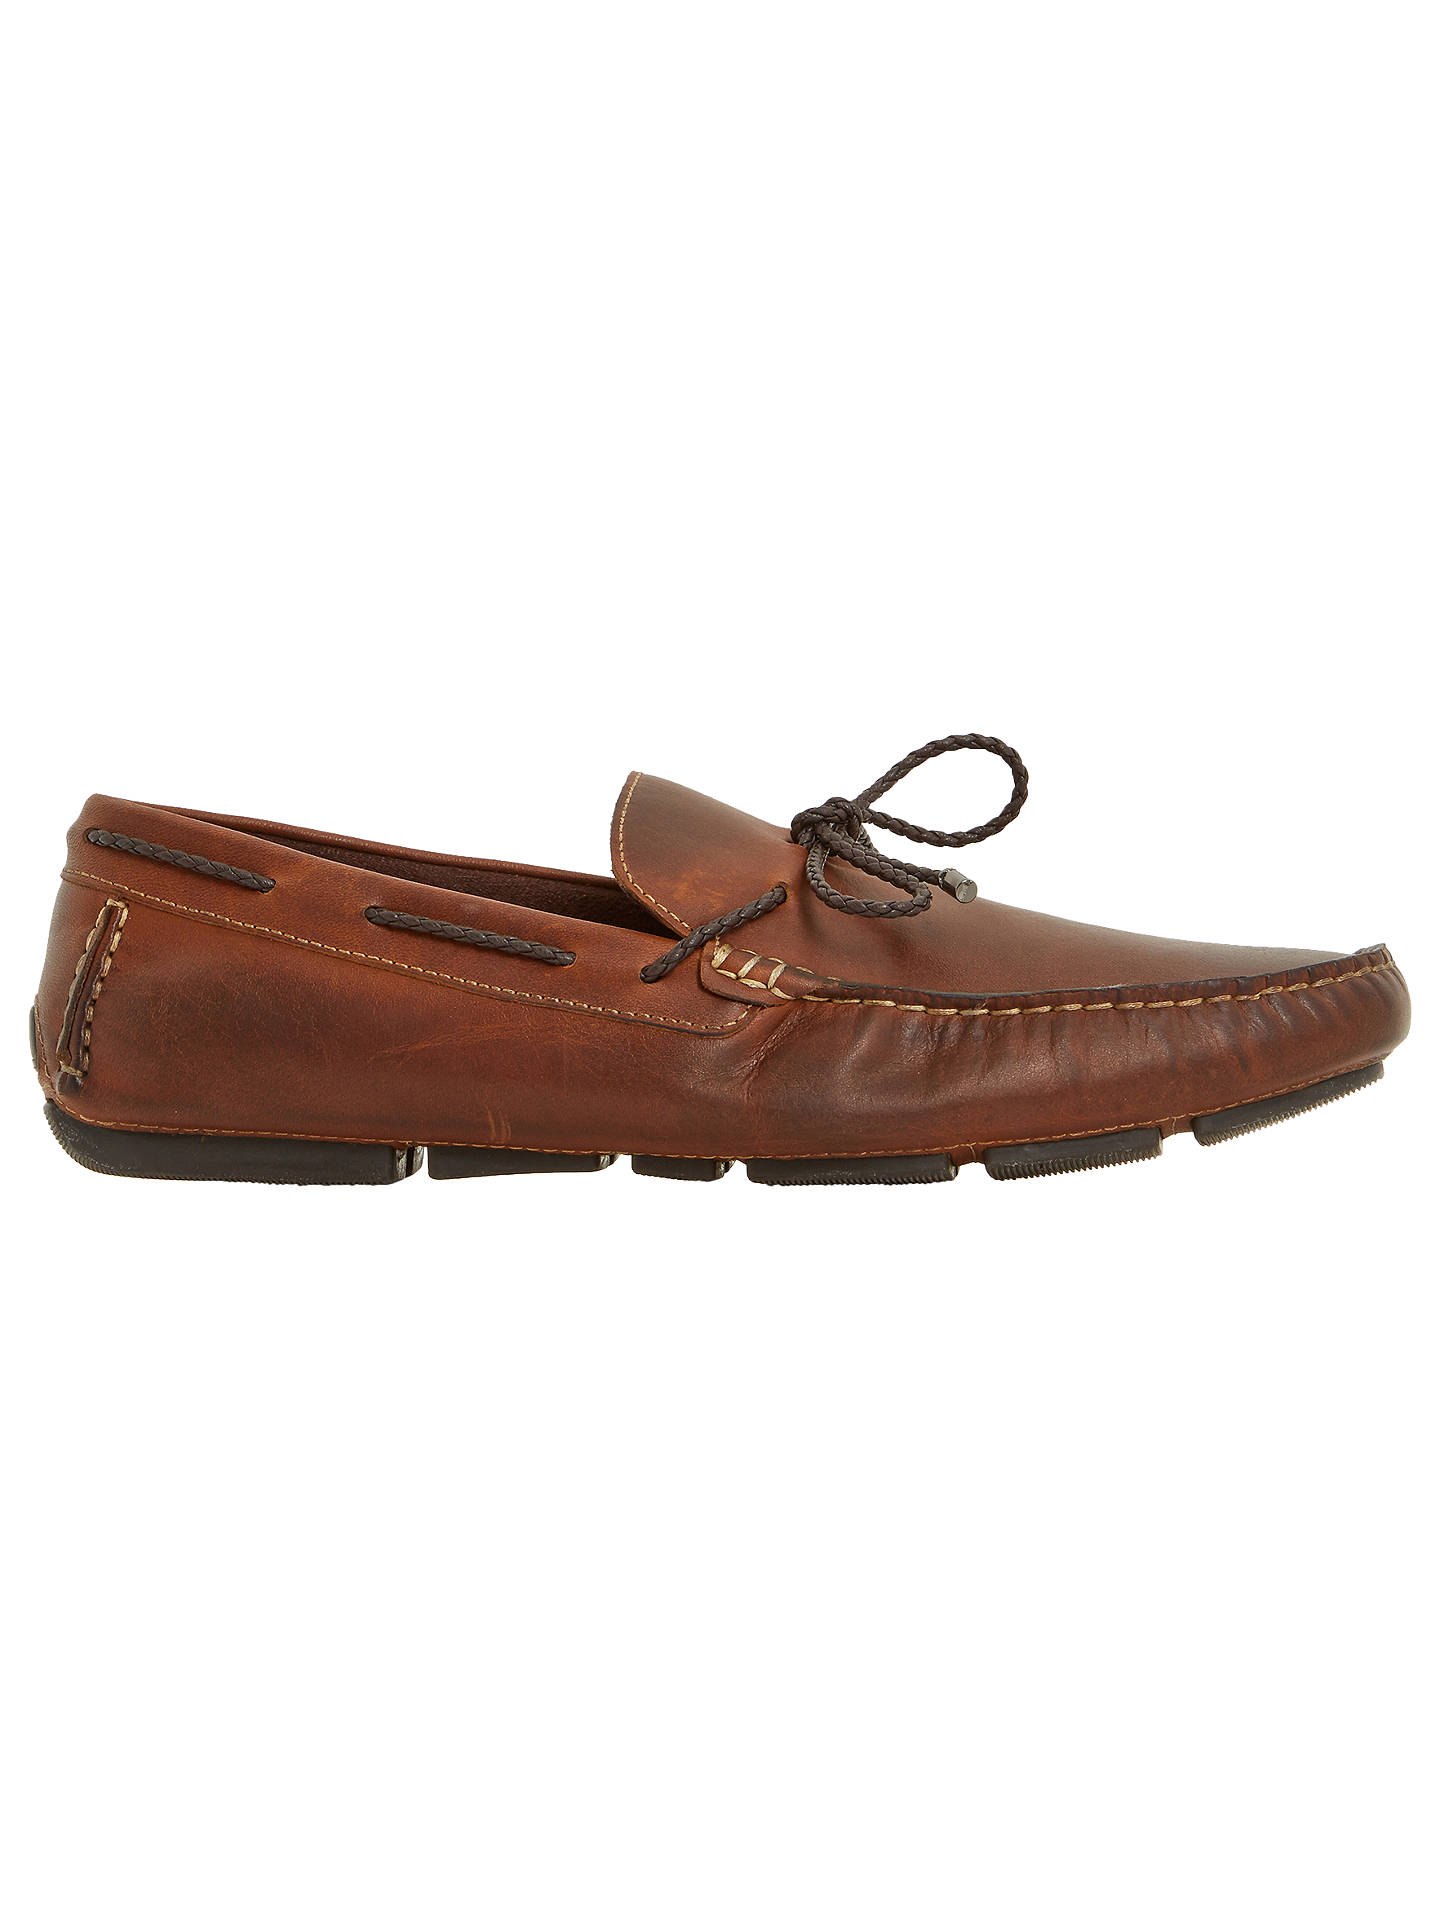 9d8a8f20884 Dune Barnacle Leather Driving Loafers, Leather at John Lewis & Partners